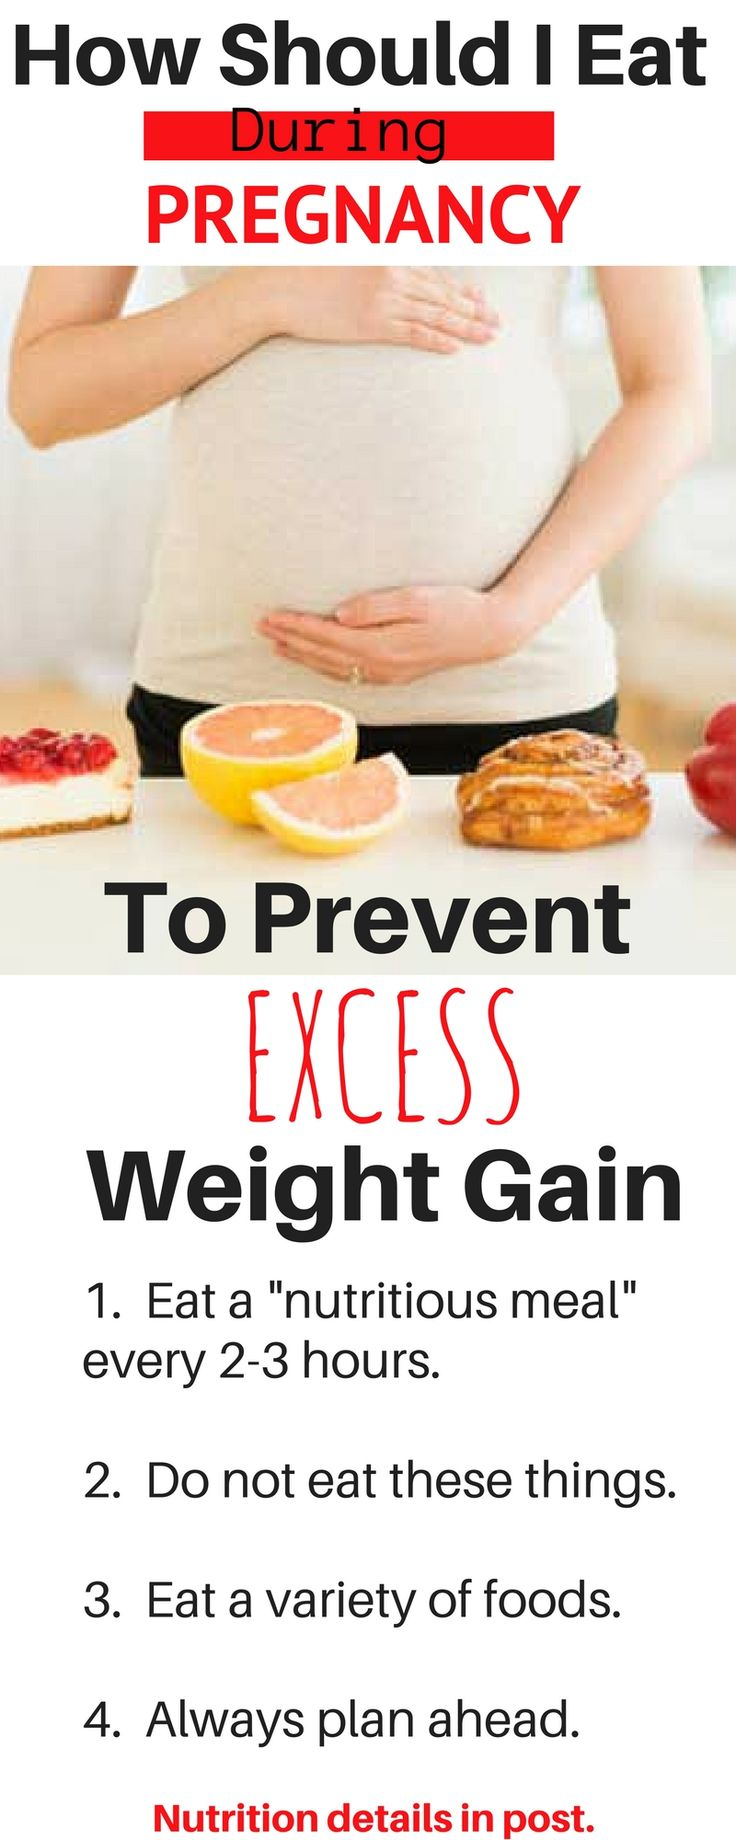 Pregnancy nutrition tips for a healthy pregnancy with no excess weight gain. Pregnancy workout and diet tips inside the post.